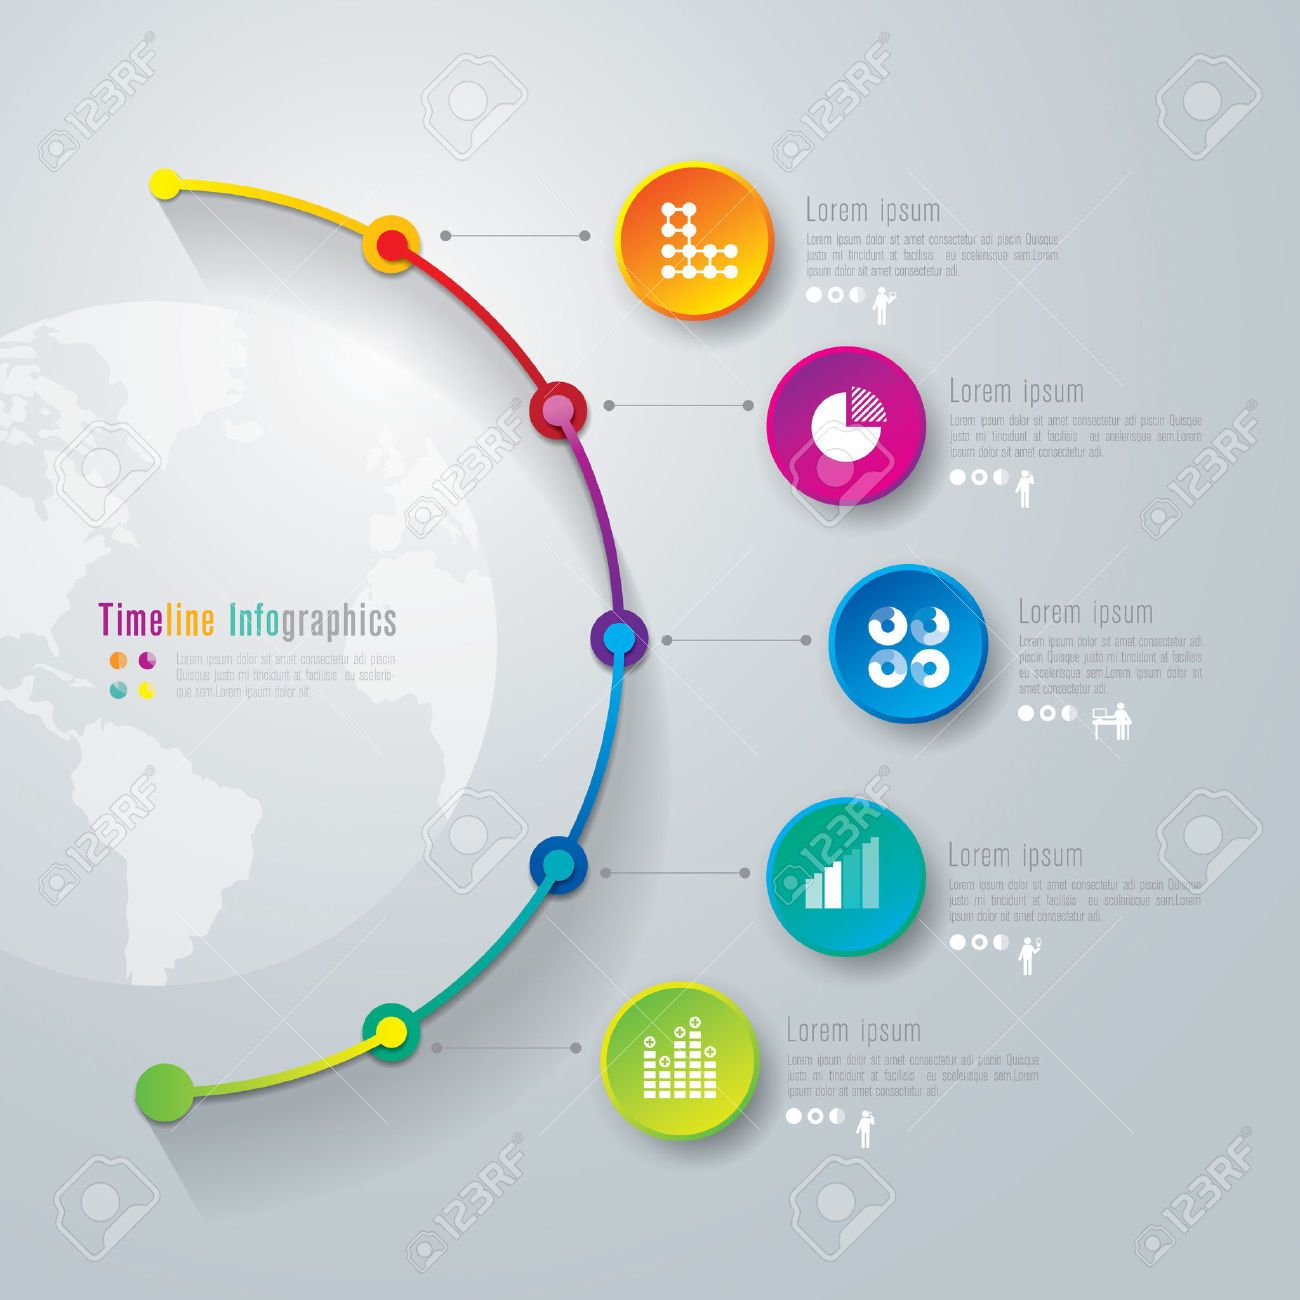 Timeline Infographics Design Template Royalty Free Cliparts - Timeline infographic template